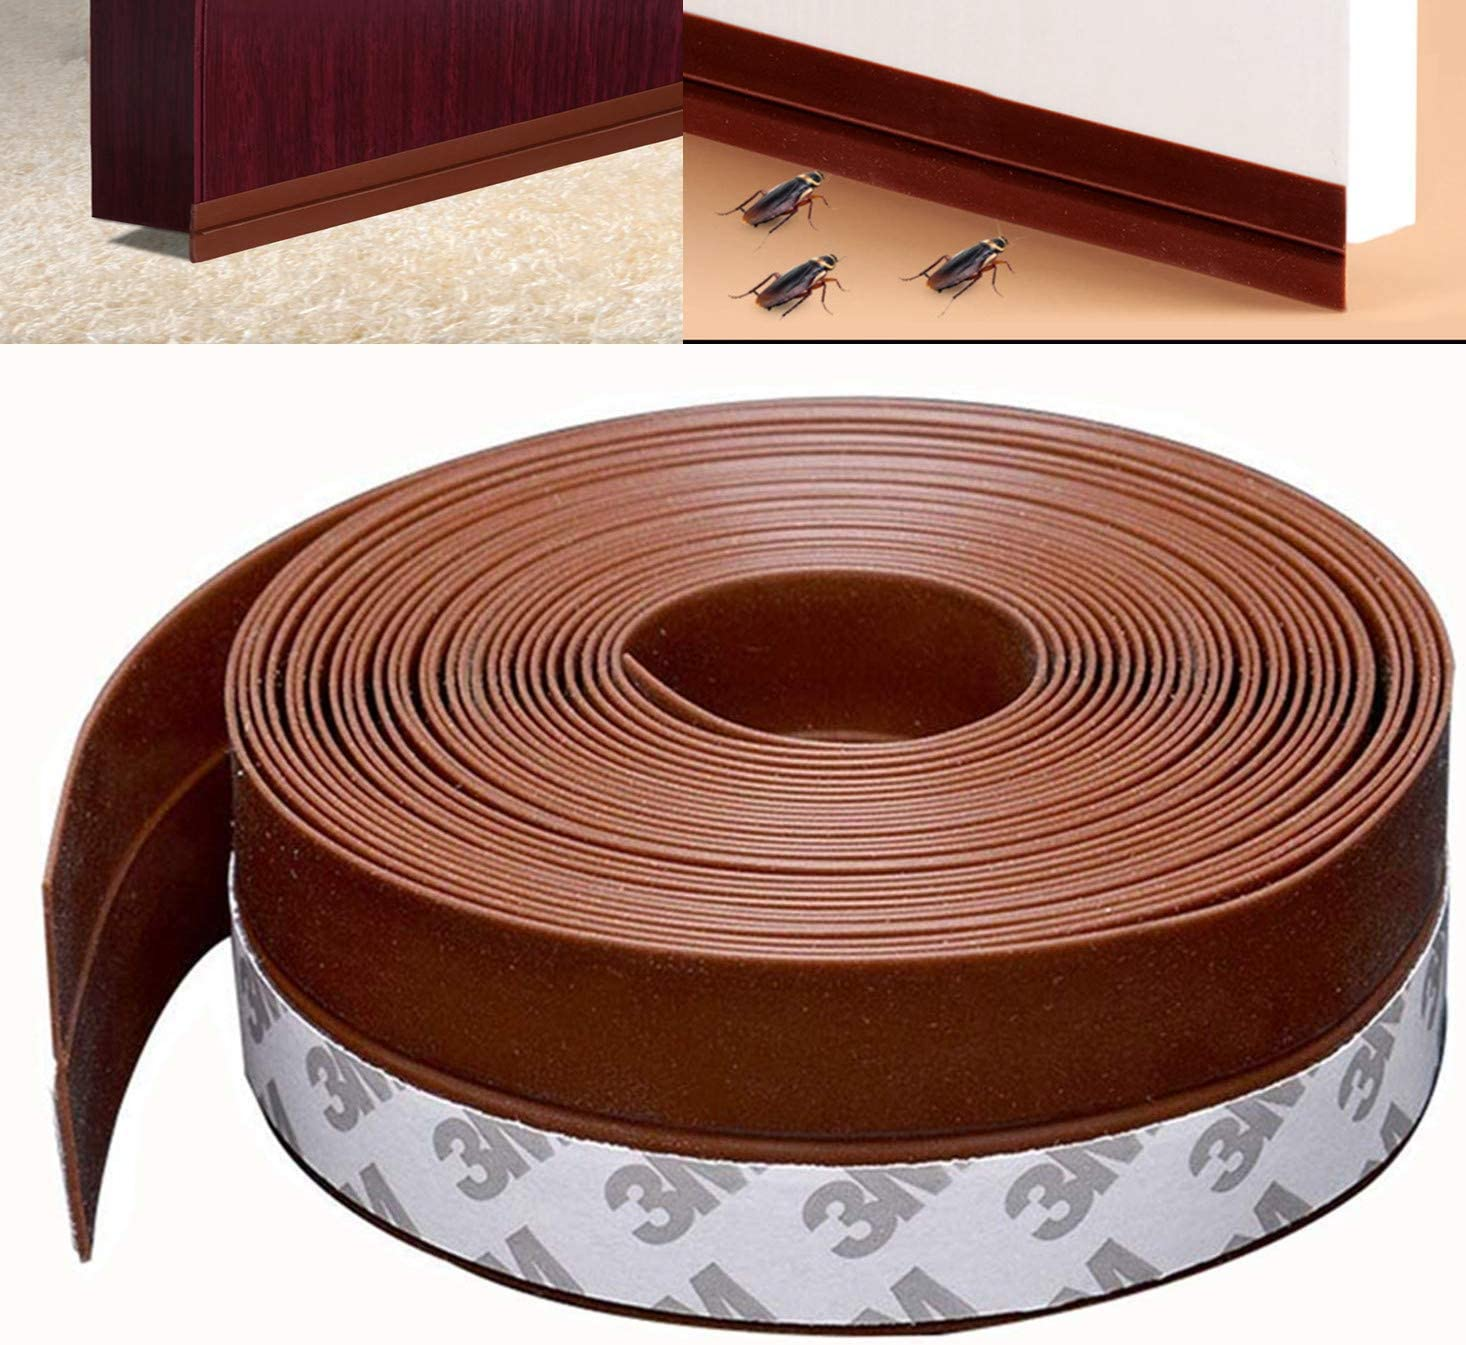 35mm*5m Home Door Seal Strip Weather Stripping Silicone Window Sealing Strip SC